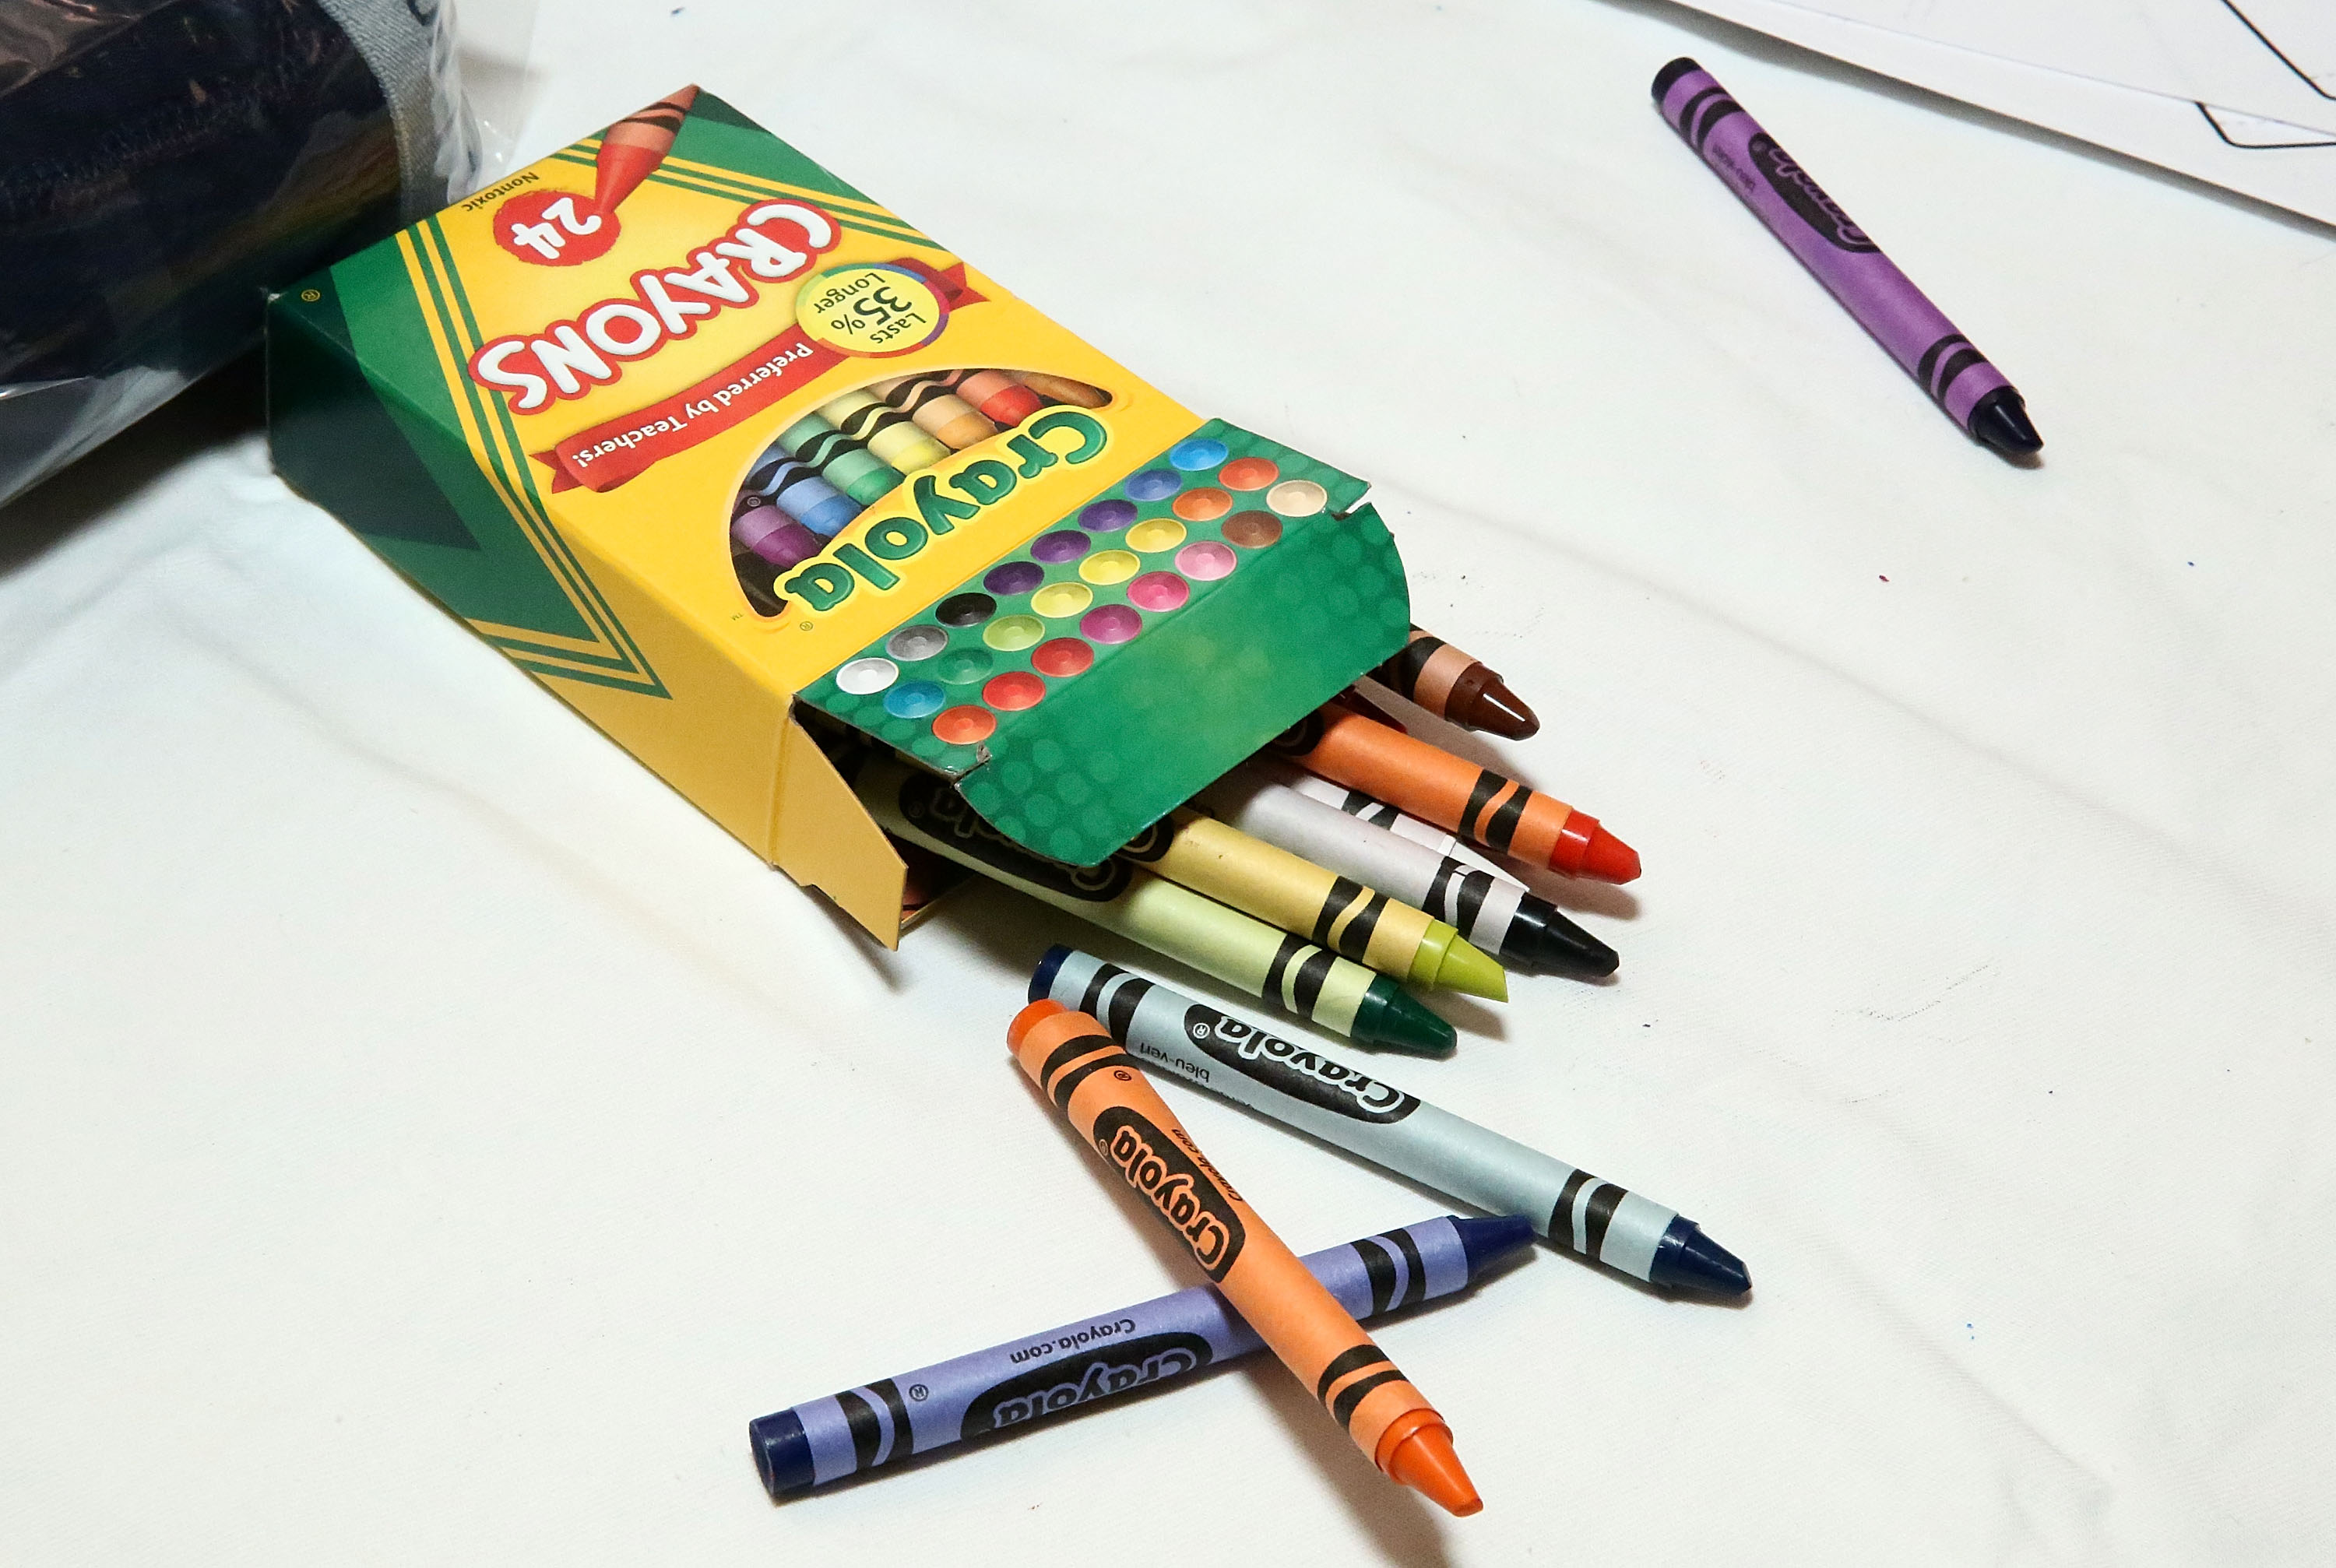 Crayola crayons are displayed at The MOMS & New York Family Magazine Cover Party at 100 Barclay on August 16, 2016 in New York City.